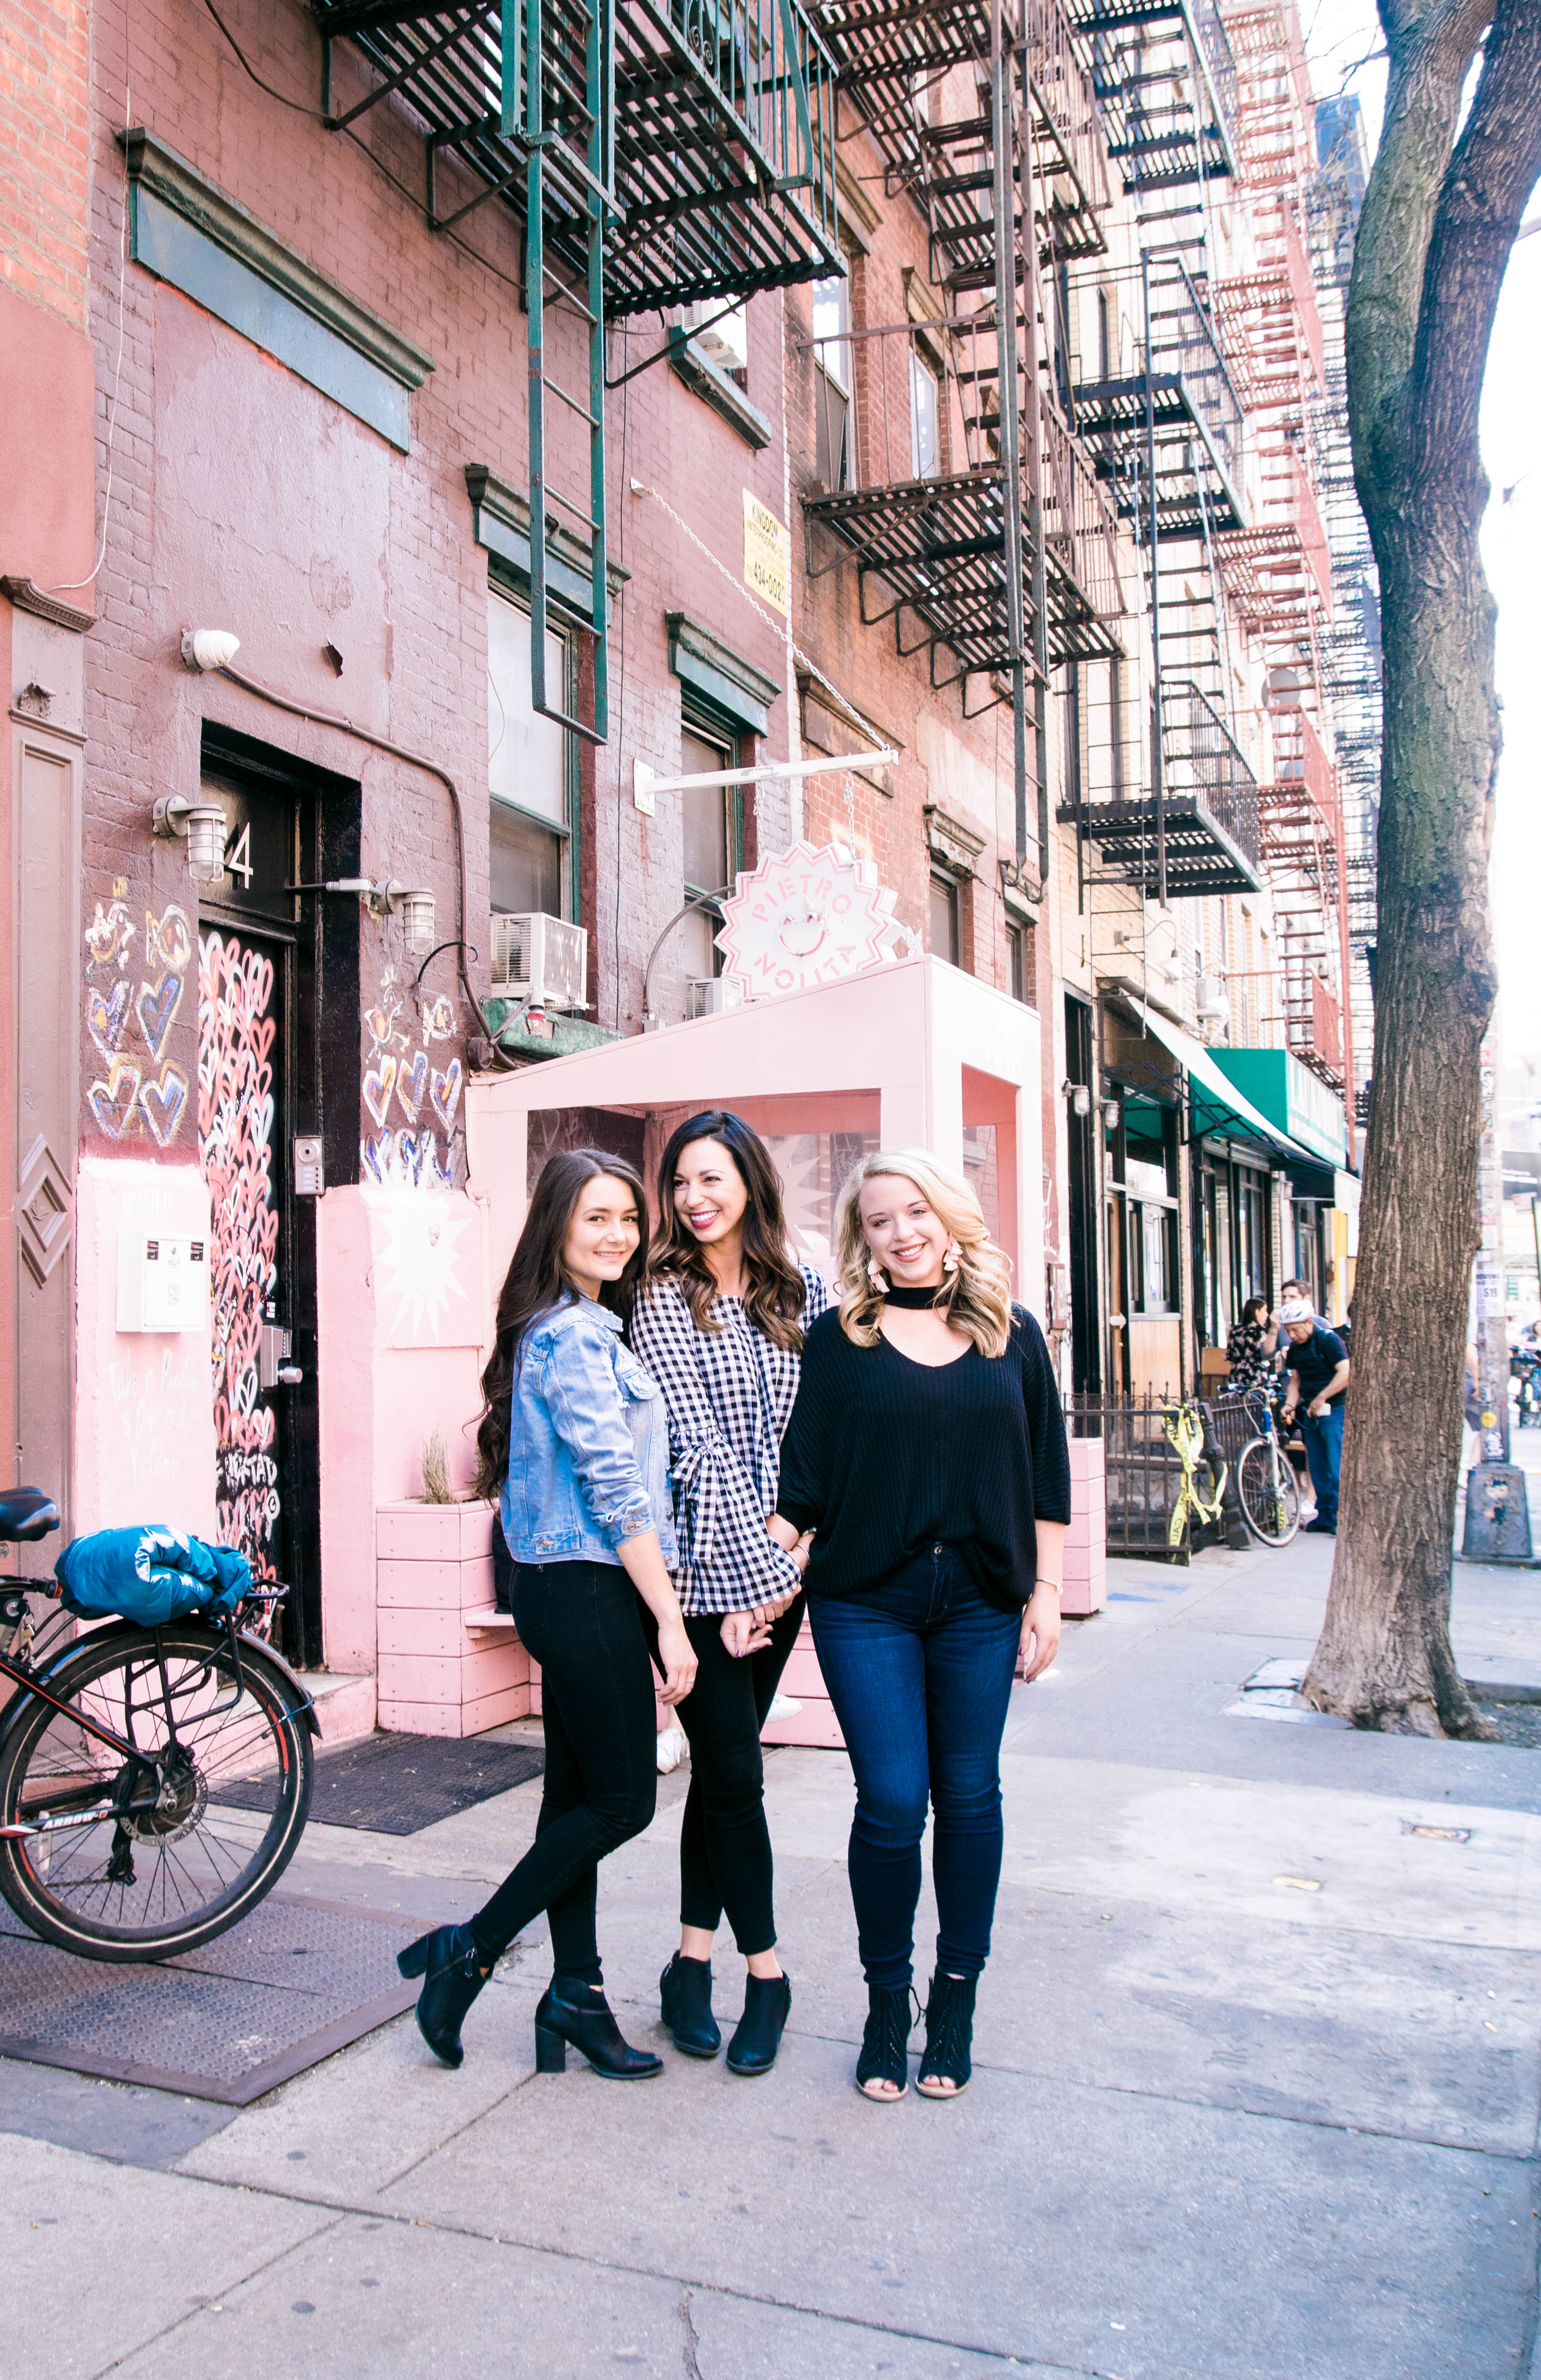 Flytographer, girls getaway, girls weekend, girls weekend ideas, girls trip, girls trip ideas, girls in the city, New York City, NYC, weekend in NYC, girls trip to NYC, where to brunch in NYC, New York City brunch, weekend highlights, #NYCtips #NYCrestaurants #travelblog